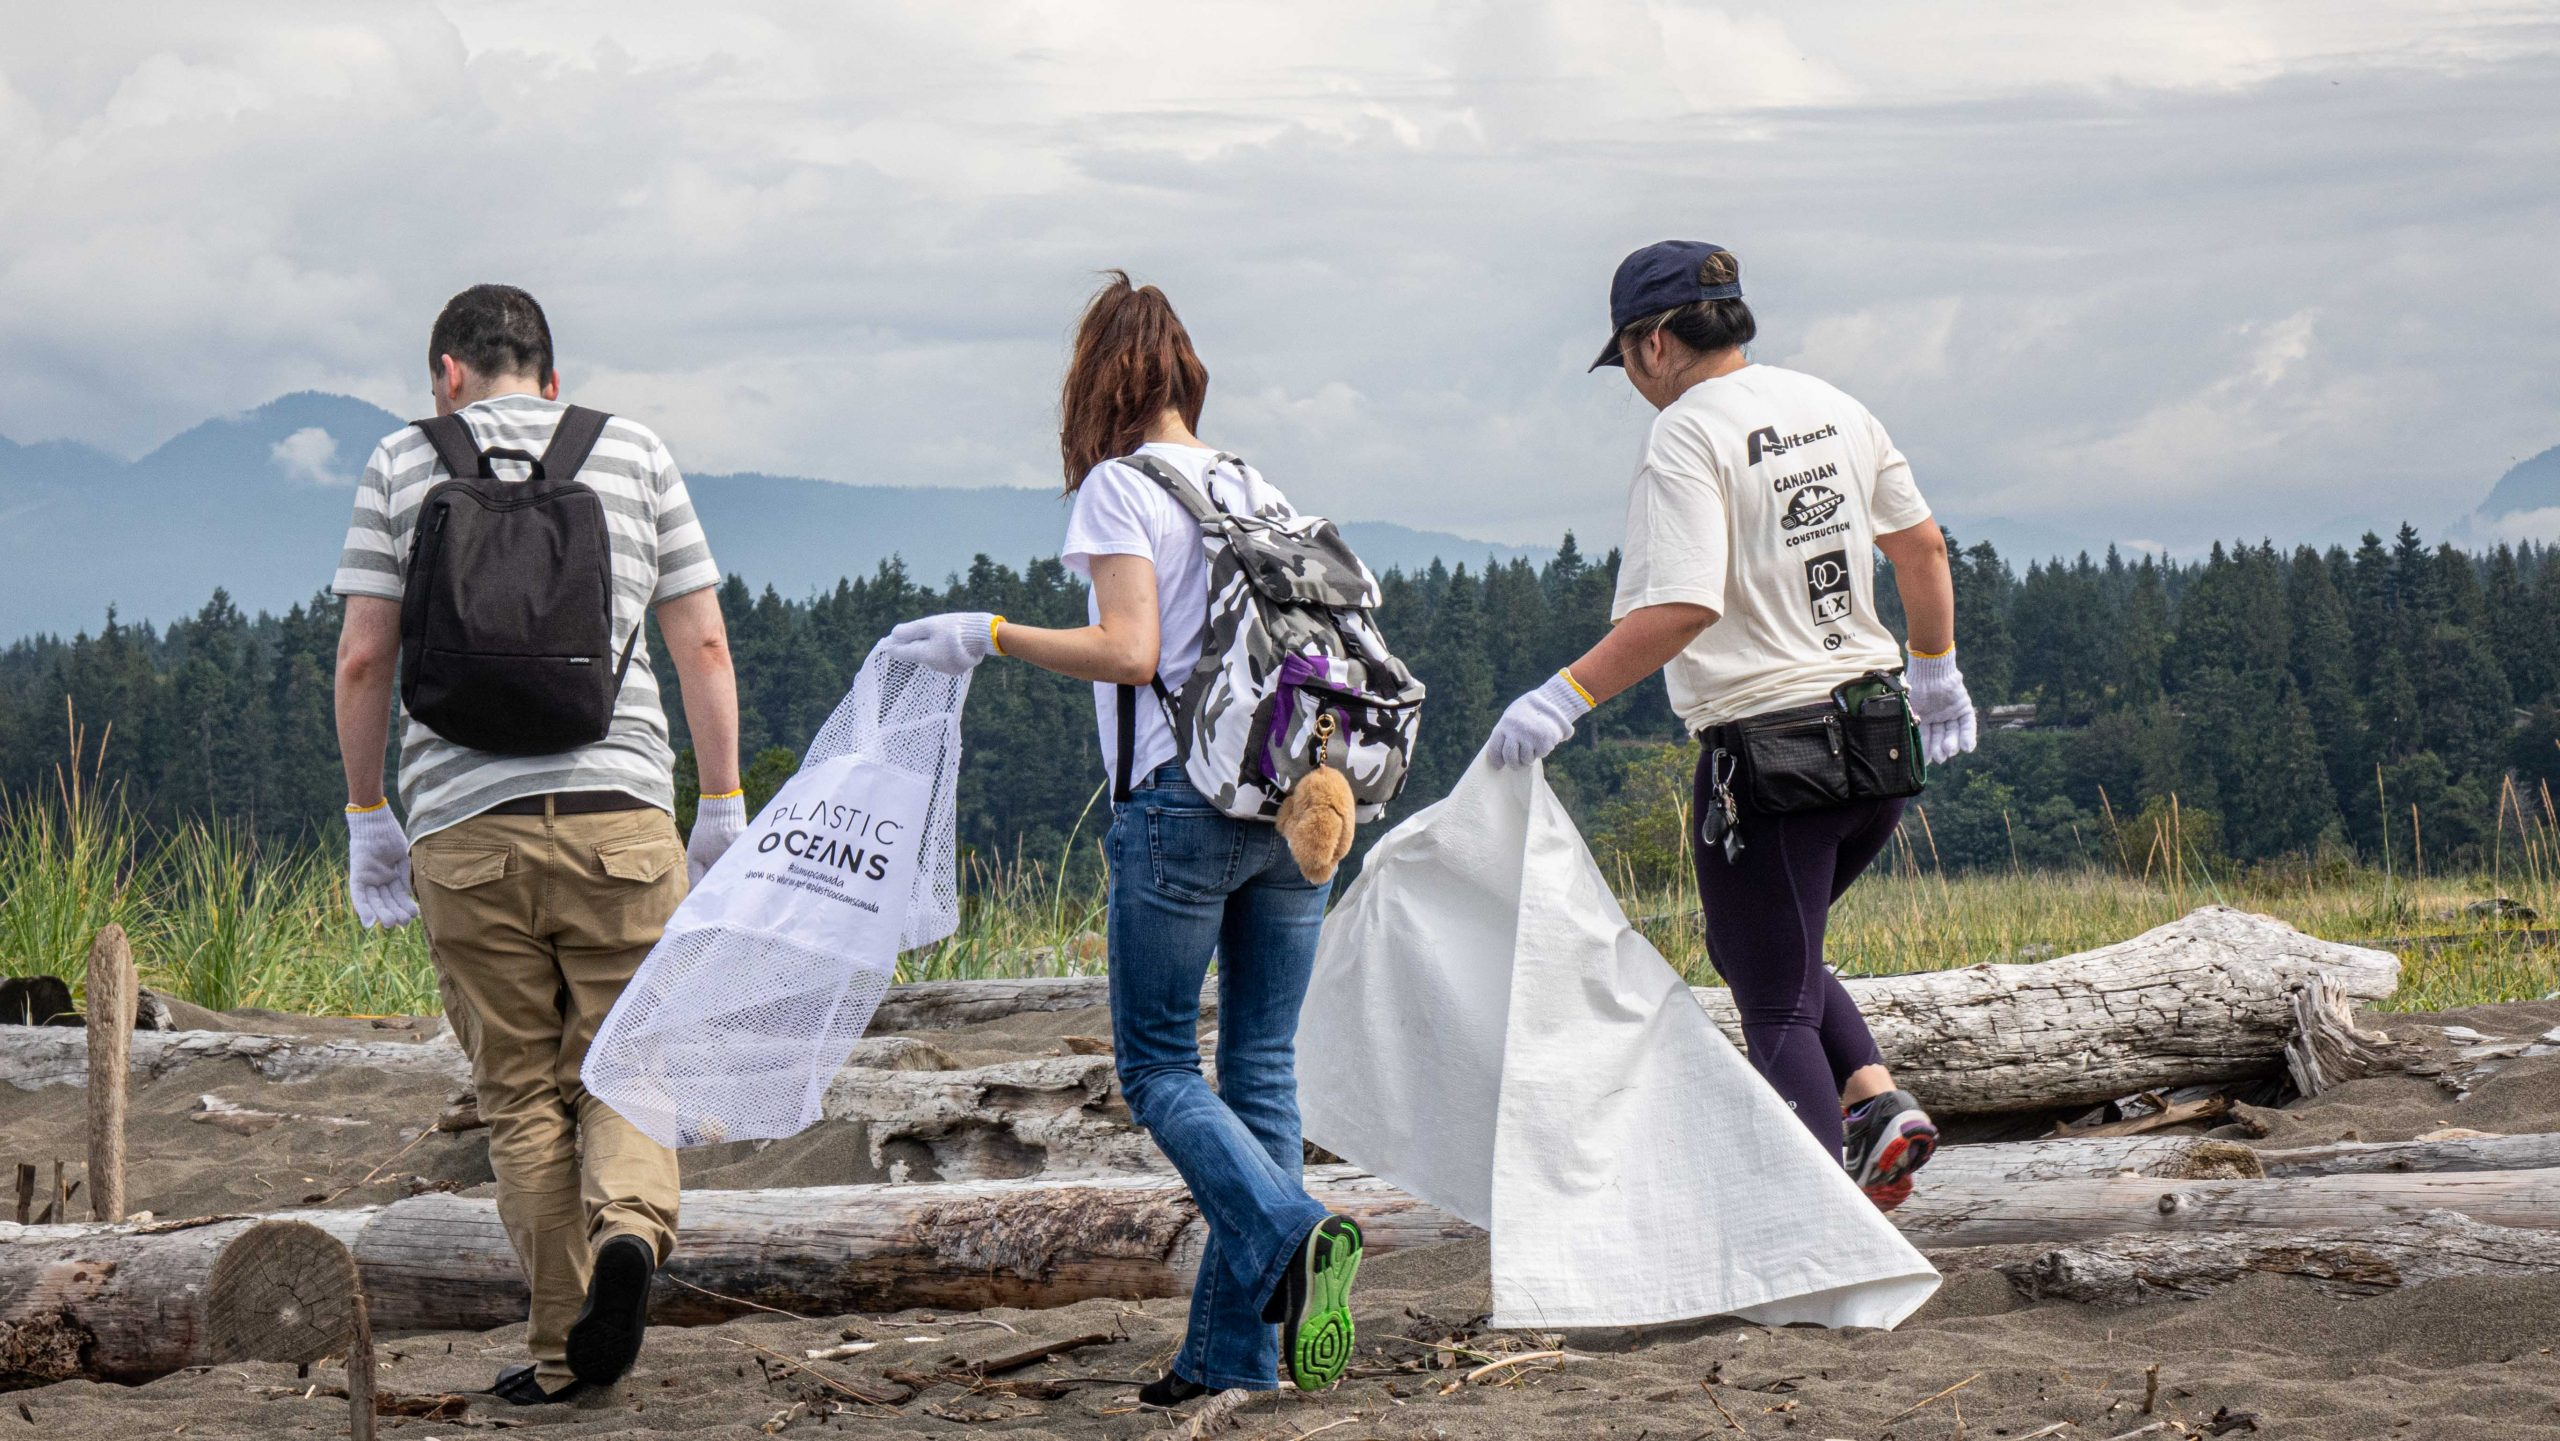 Volunteers at a Plastic Oceans Canada Cleanup